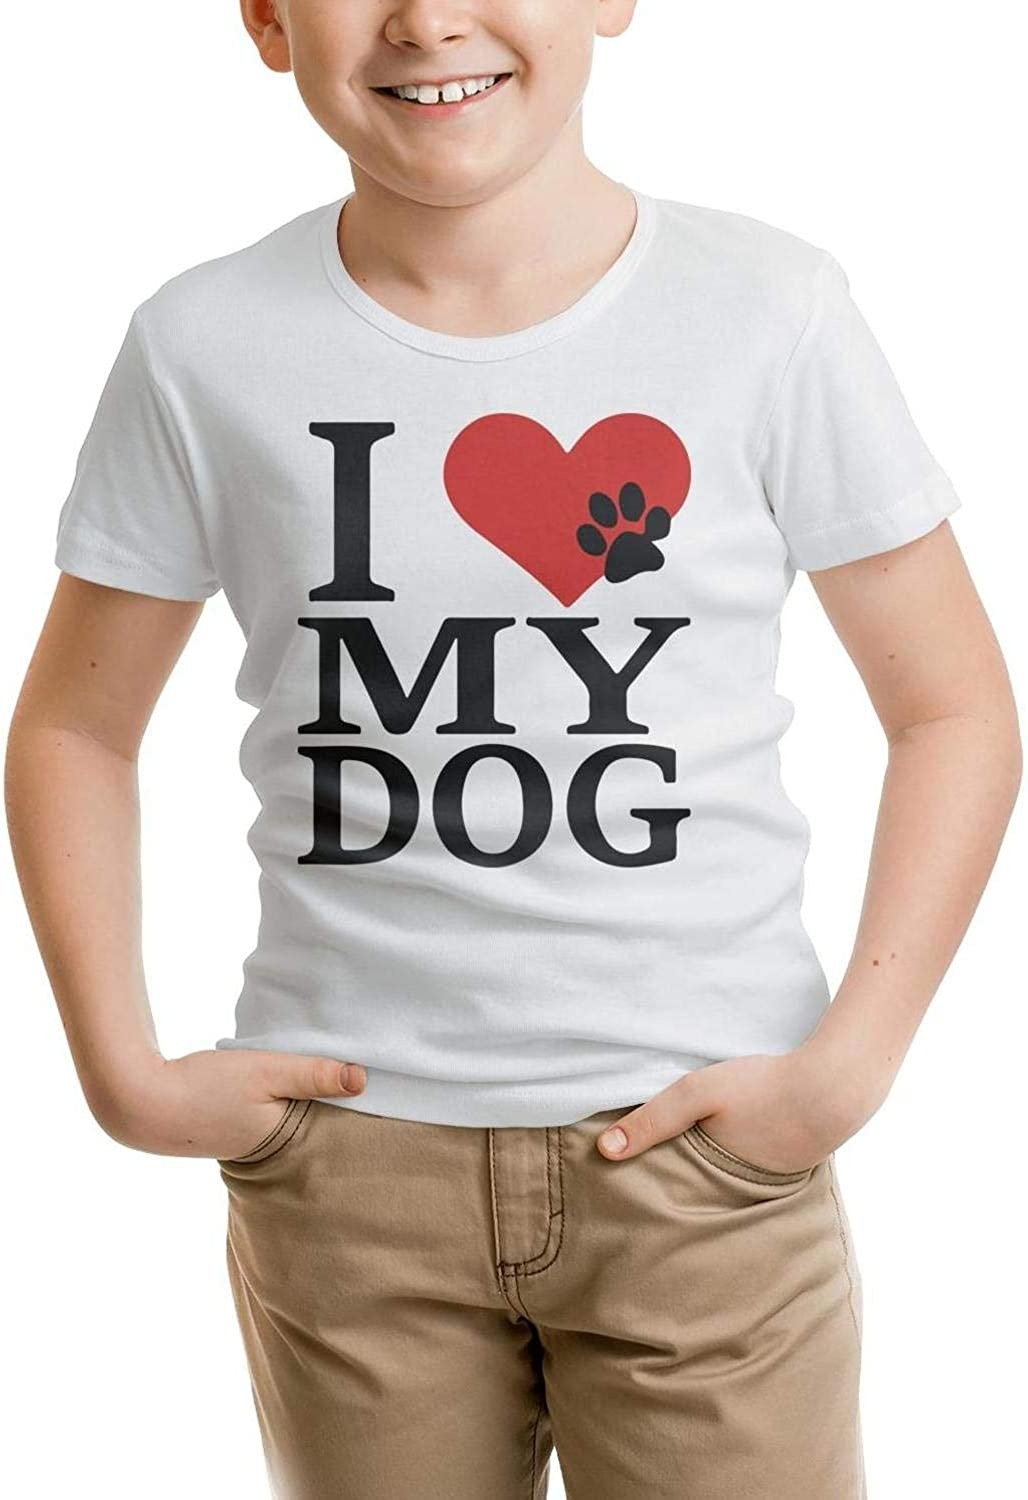 Kids T-Shirt Casual Novelty I Love My Dog Foot paw T Shirt 100% Cotton Washed Comfortable Gift for Child T-Shirt 6165EI%2BfIyL